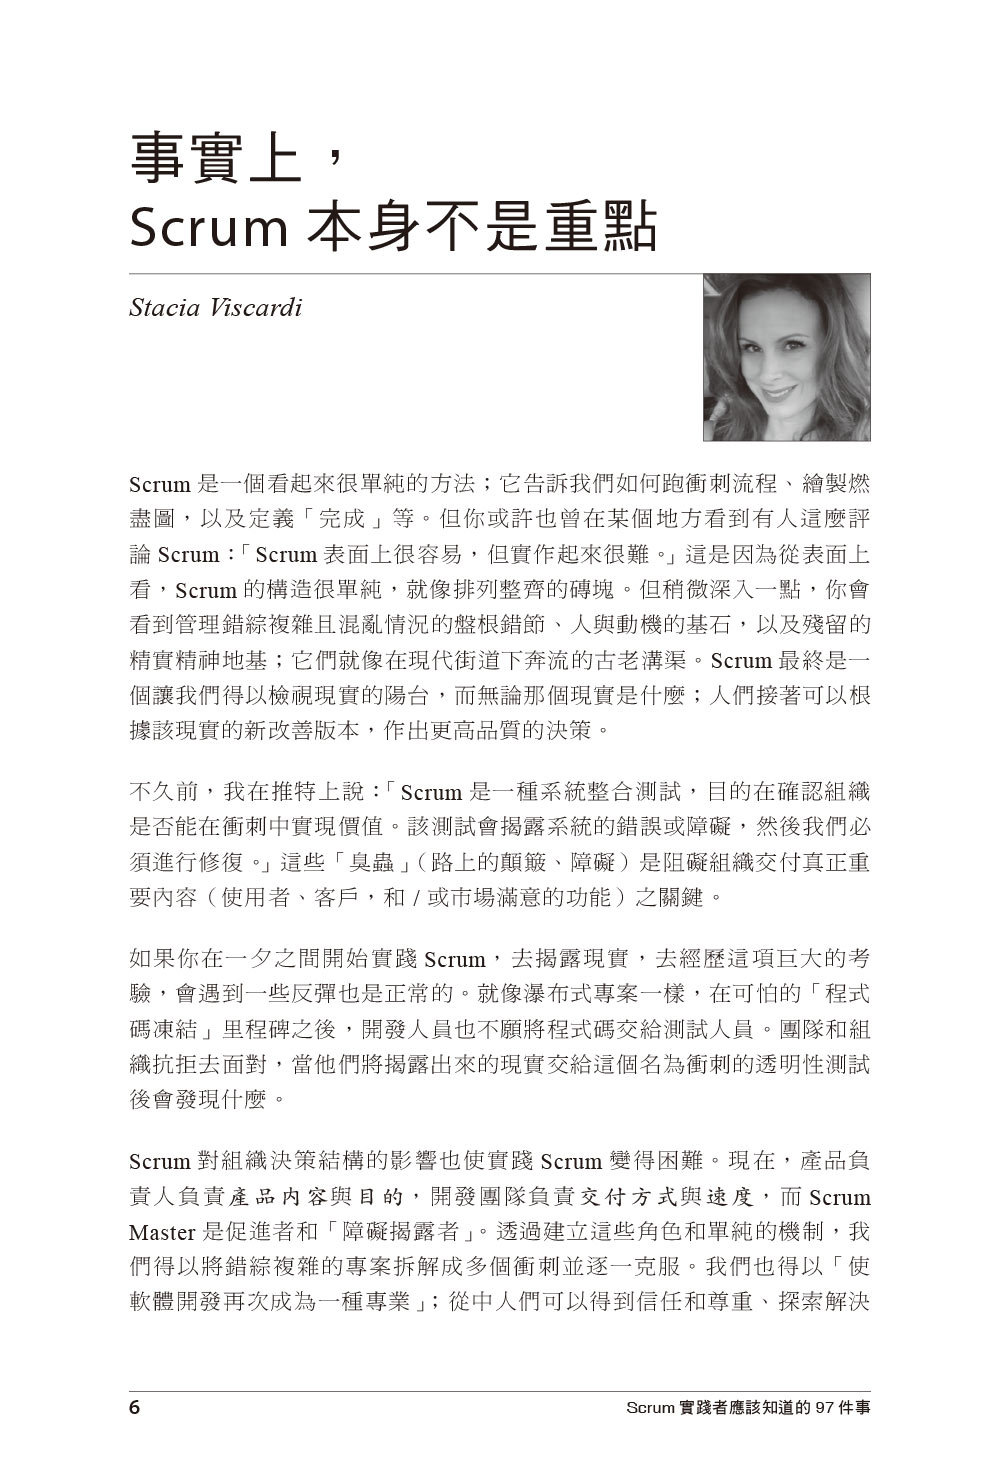 Scrum 實踐者應該知道的 97件事 來自專家的集體智慧 (97 Things Every Scrum Practitioner Should Know)-preview-9